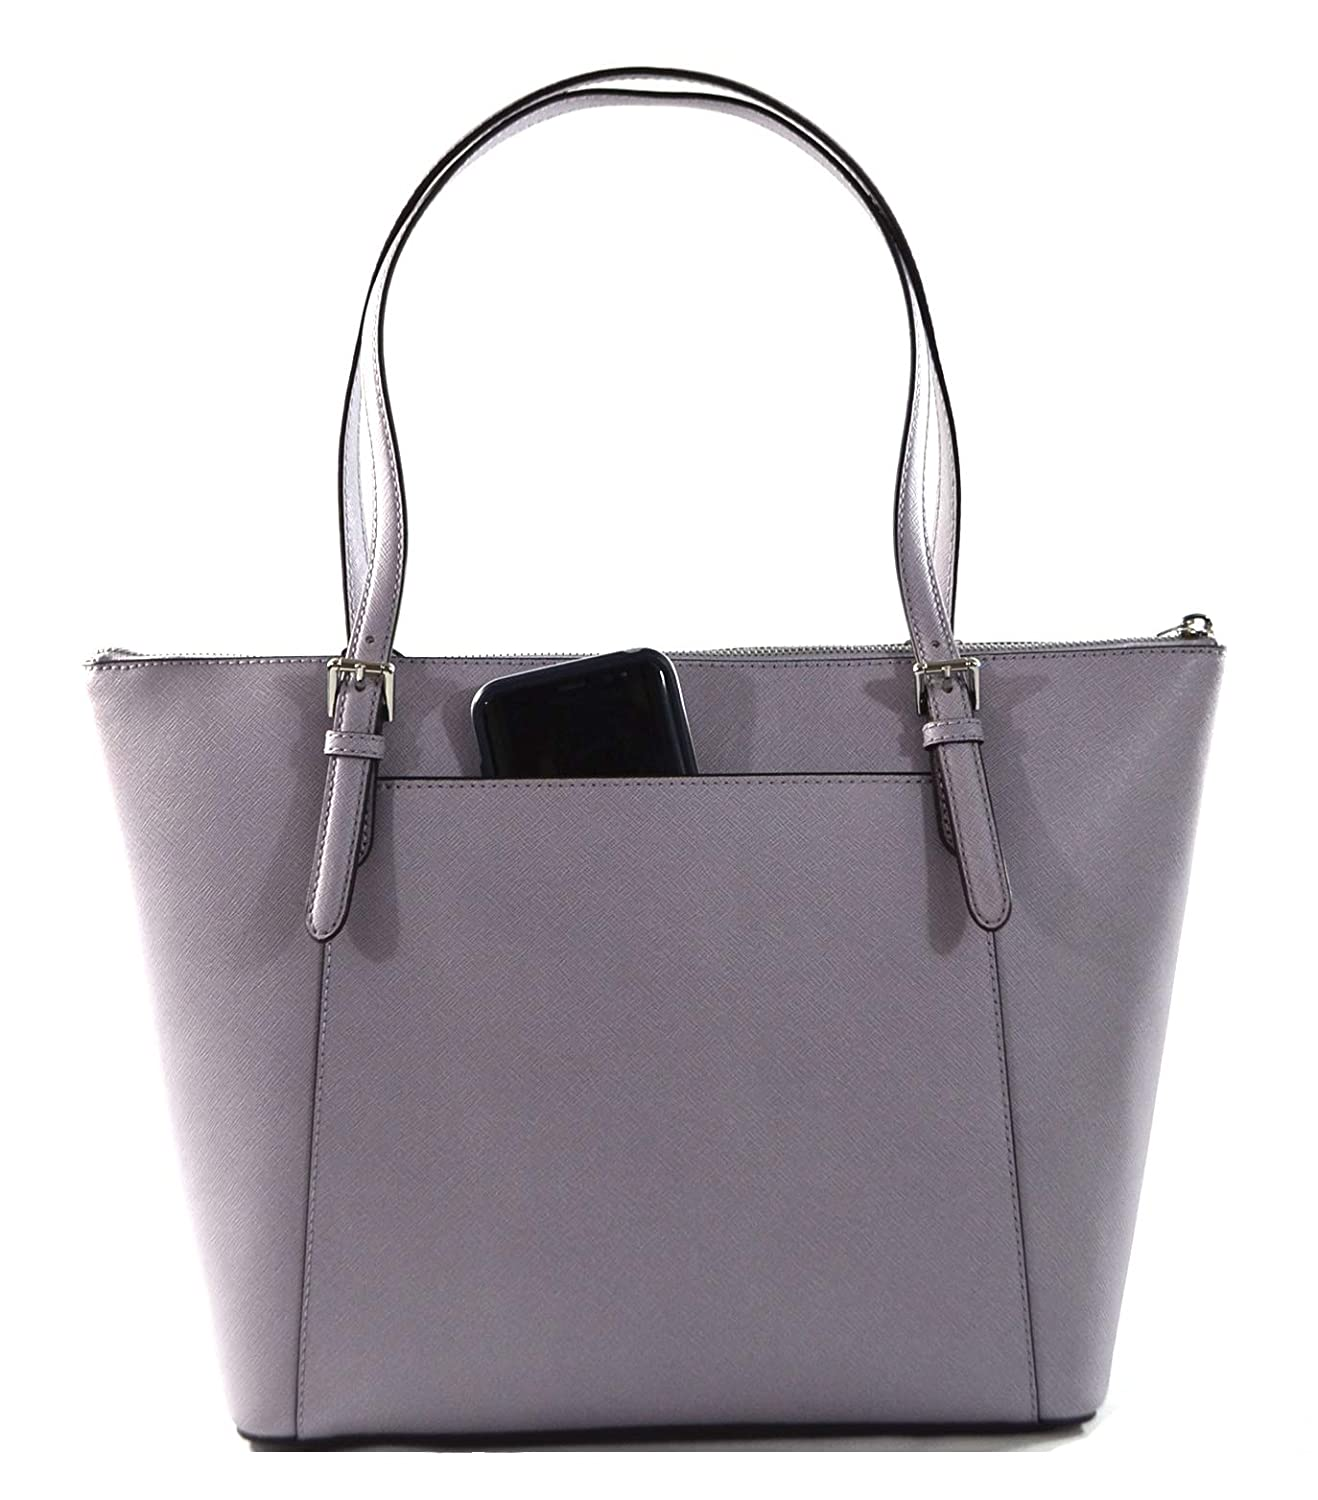 a0afb9591656 Michael Kors Women's Ciara Large East West Top Zip Leather Tote - Brown/ Acorn: Handbags: Amazon.com